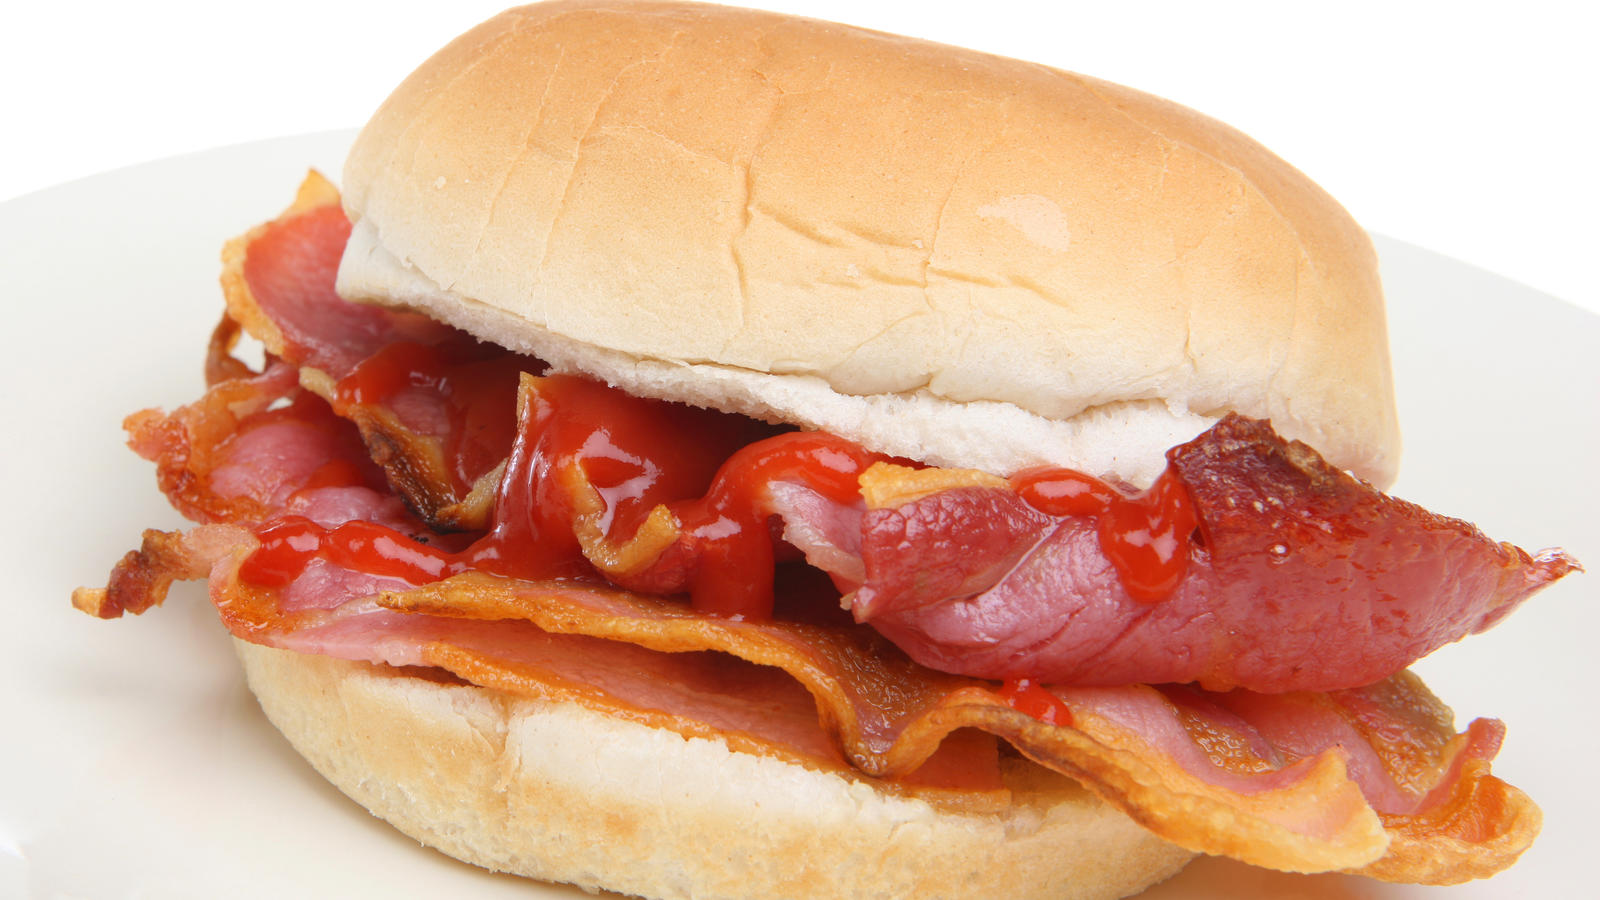 Spicy bacon butty | Good Food Channel